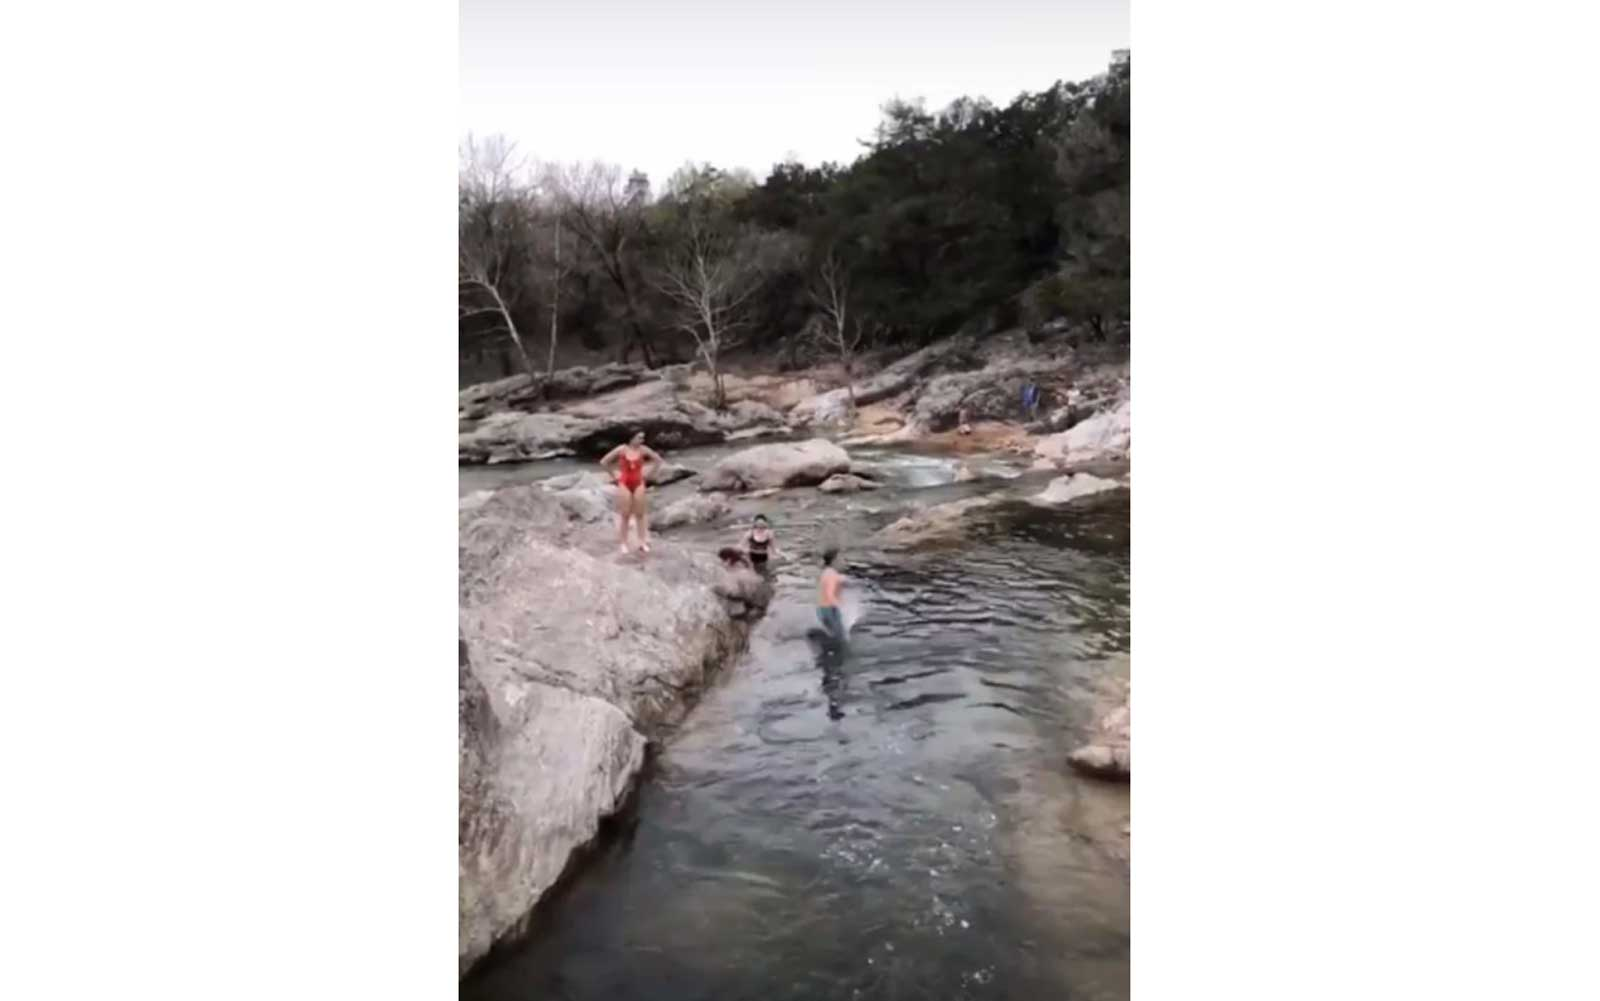 Gwen Stefani's kids jumping off rocks